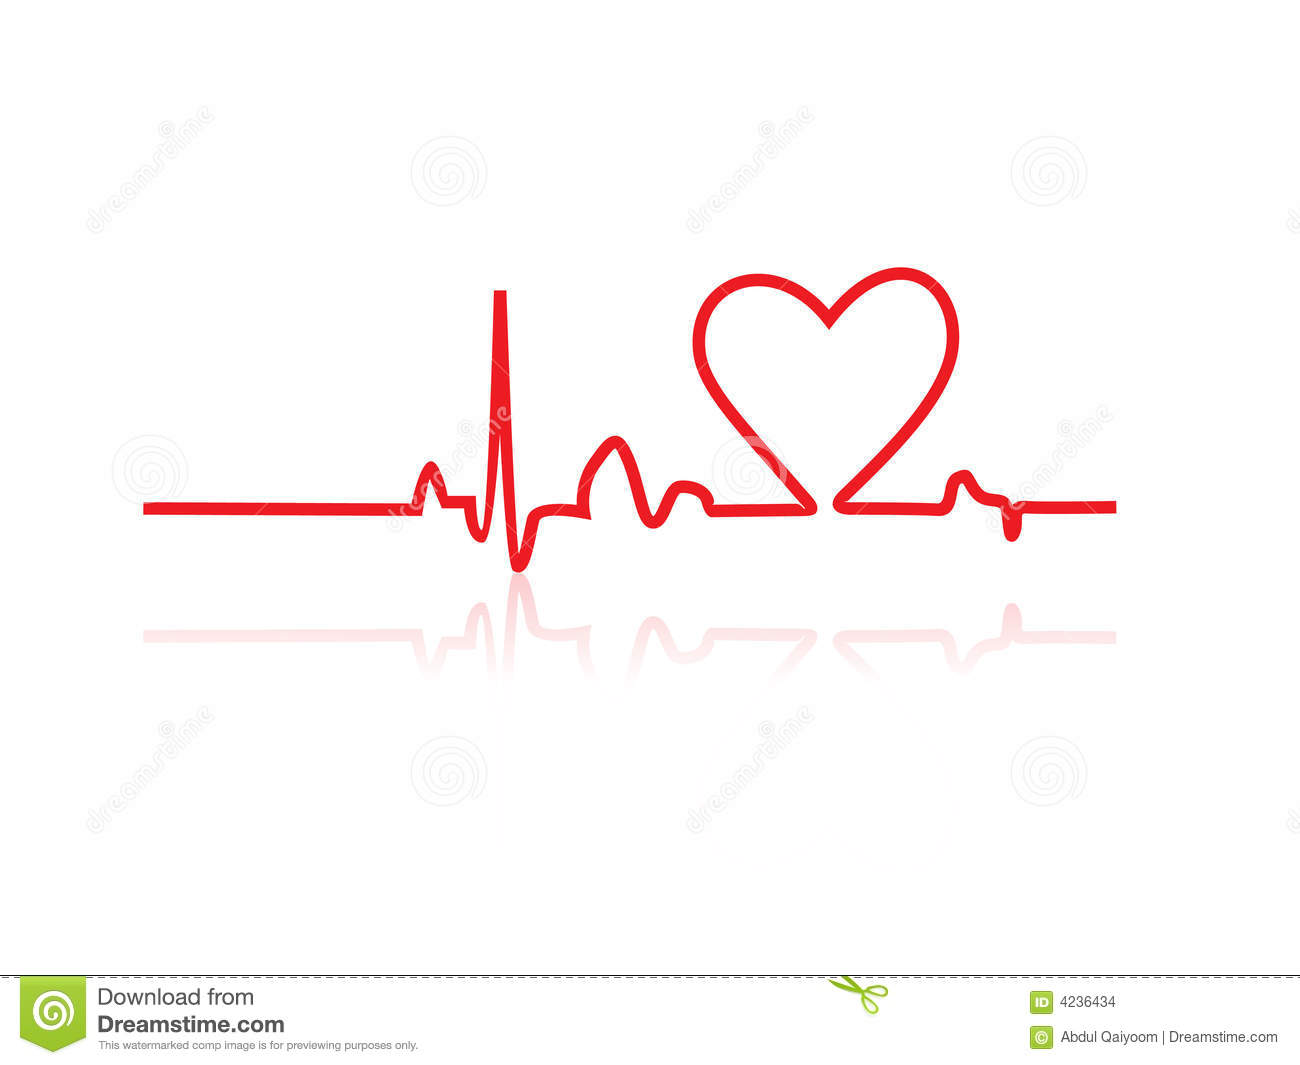 vector-heart-monitor-line-4236434 jpgHeartbeat Line Vector